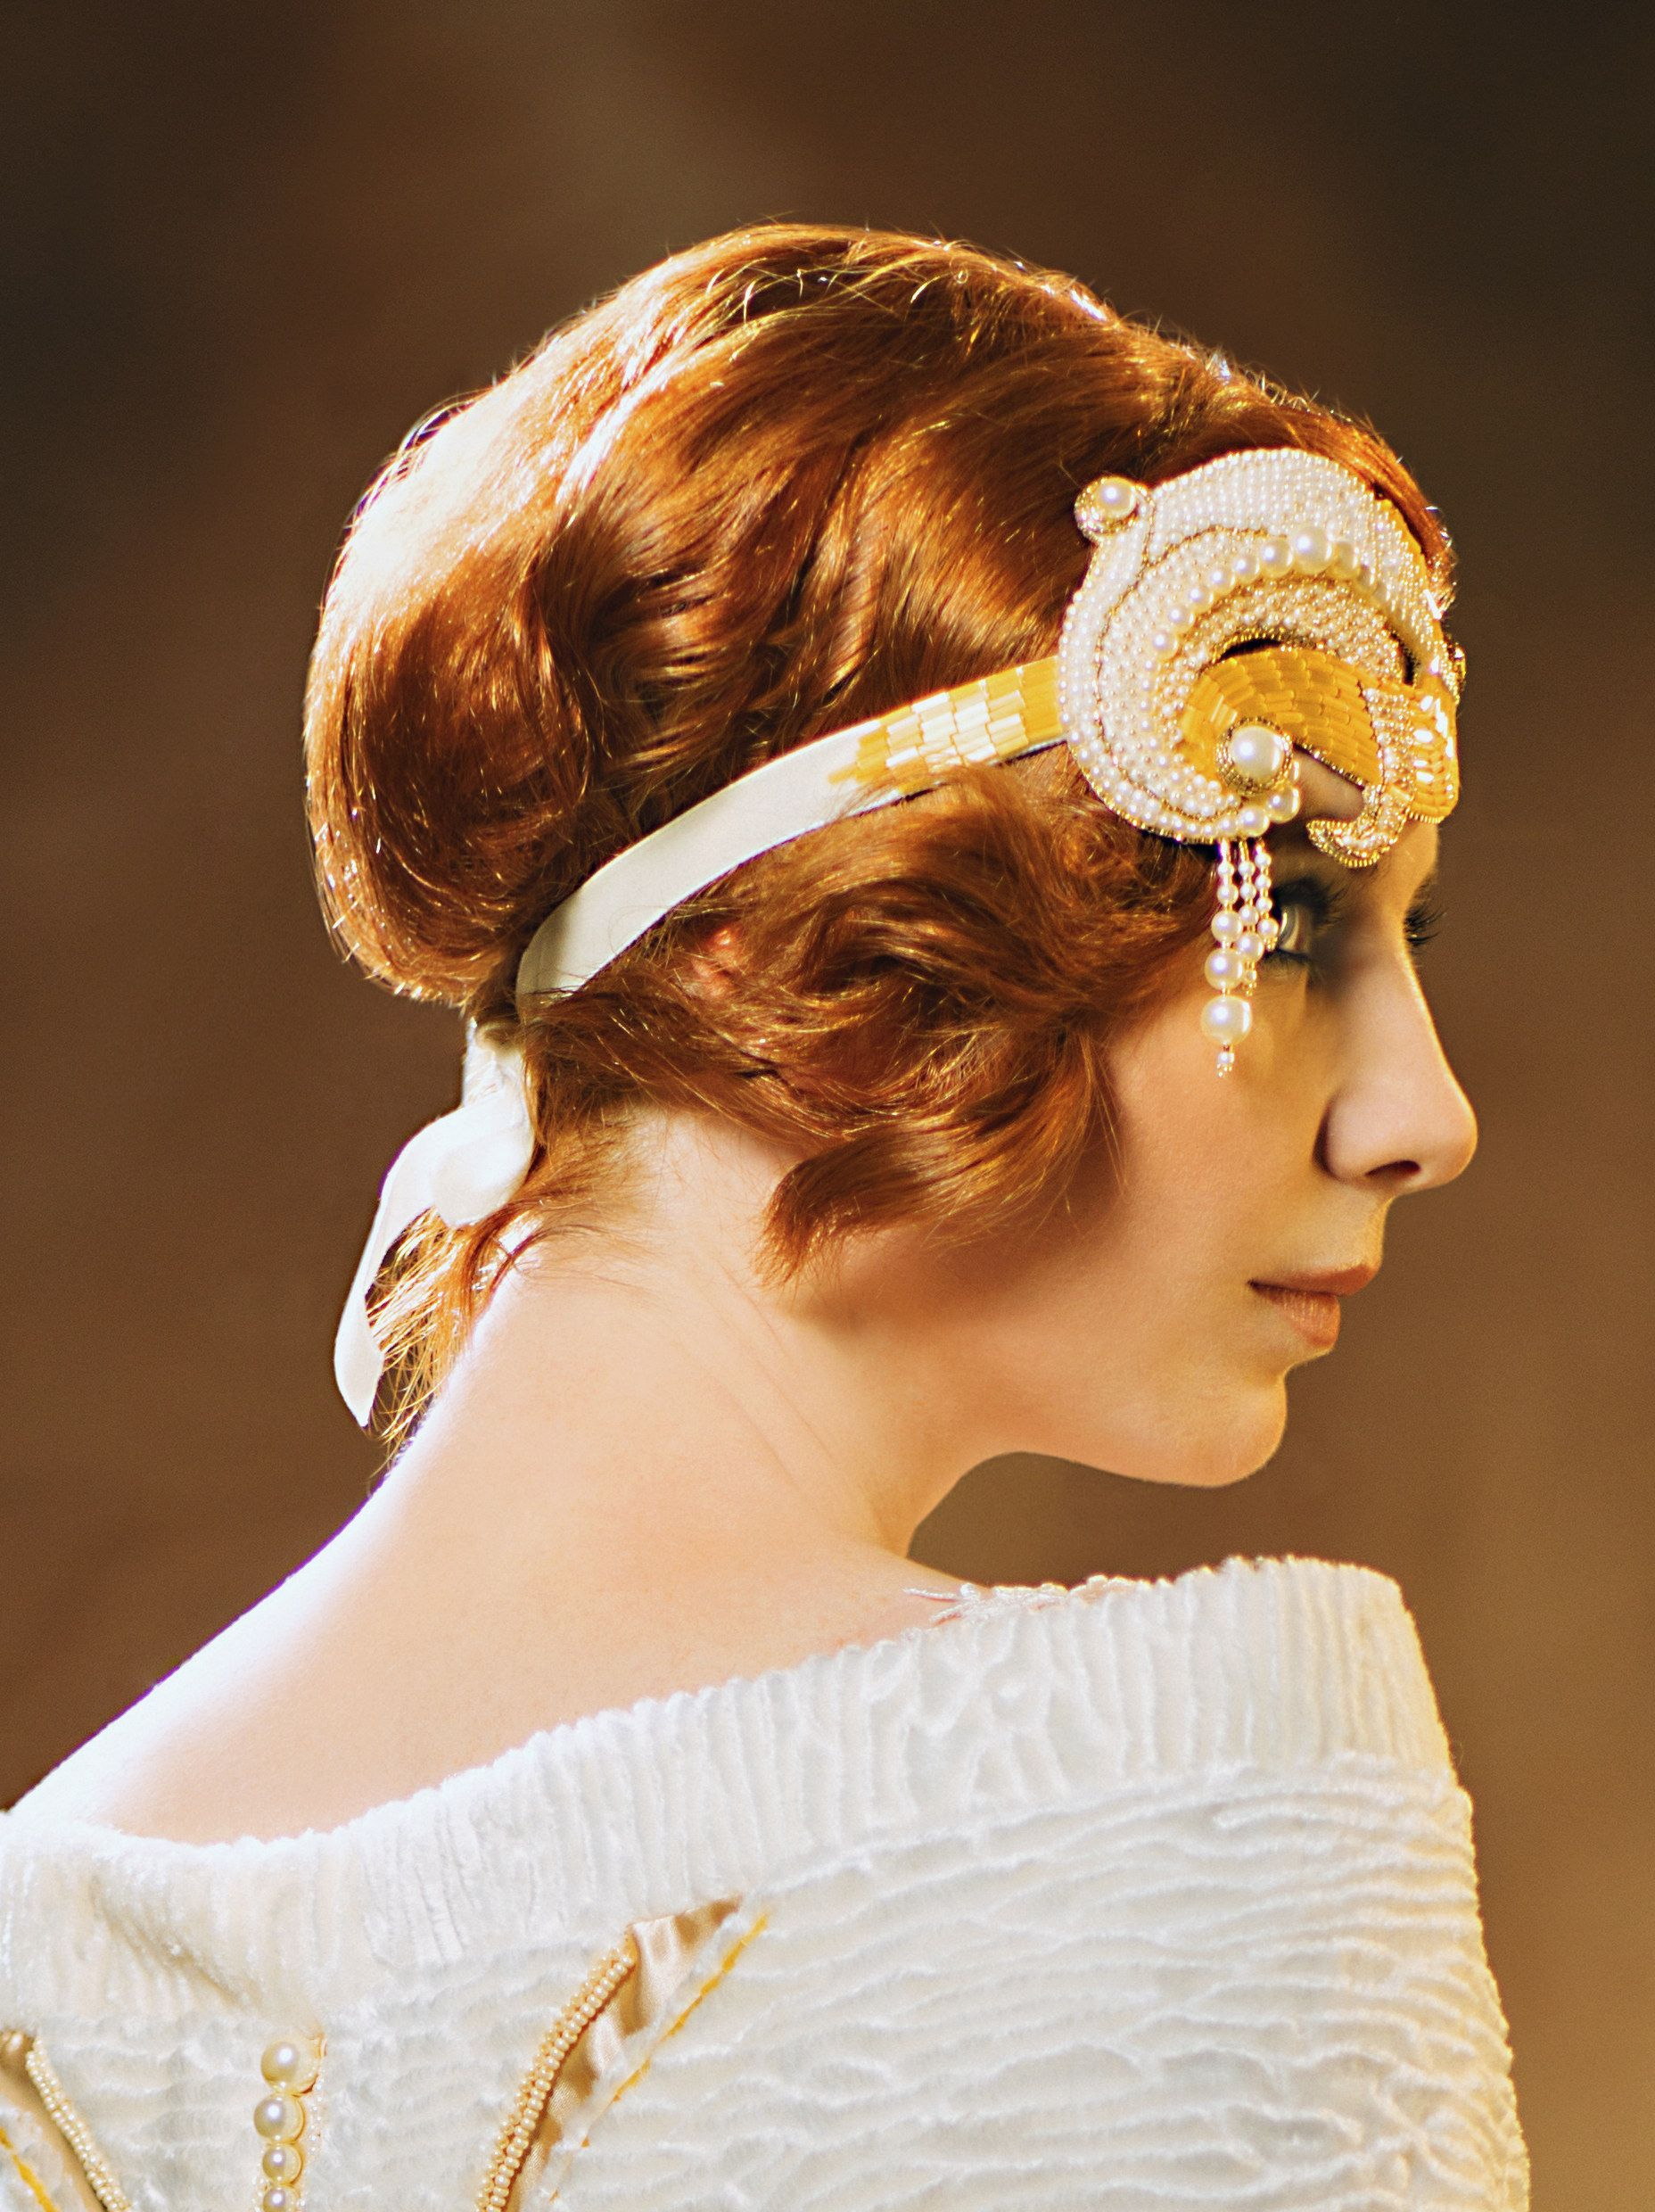 20's vintage look Great Gatsby inspired bridal updo hairstyle